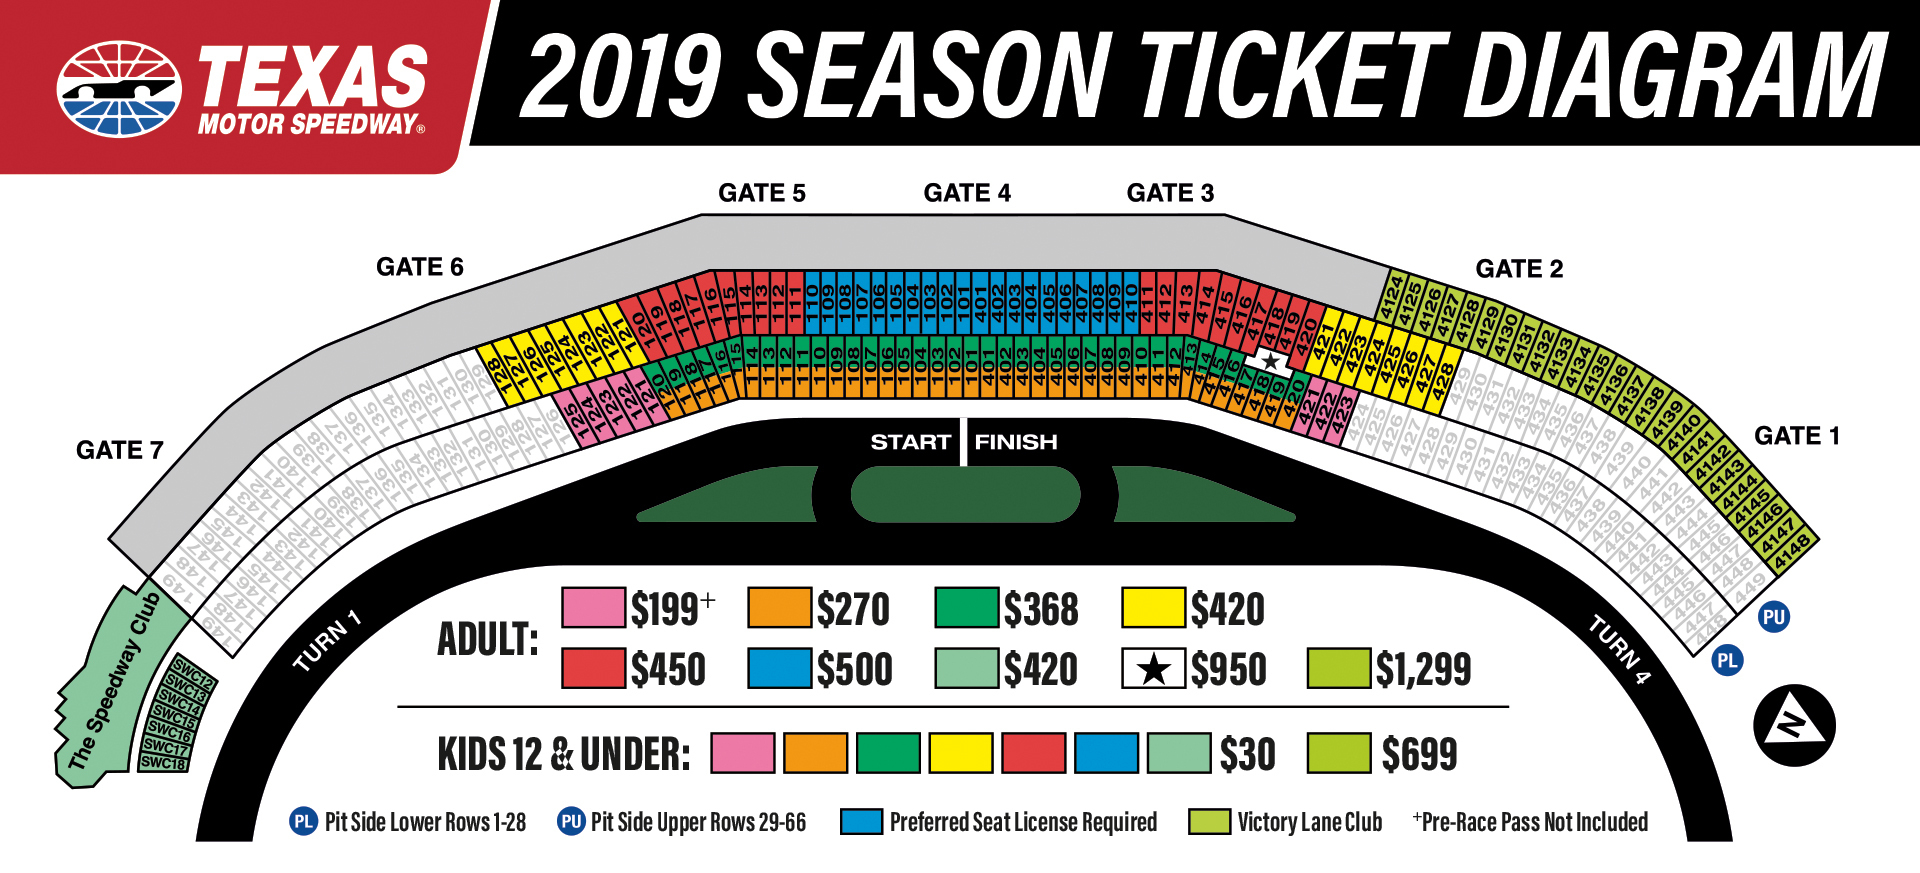 2019 Season Tickets To Texas Motor Speedway - Texas Motor Speedway Parking Map